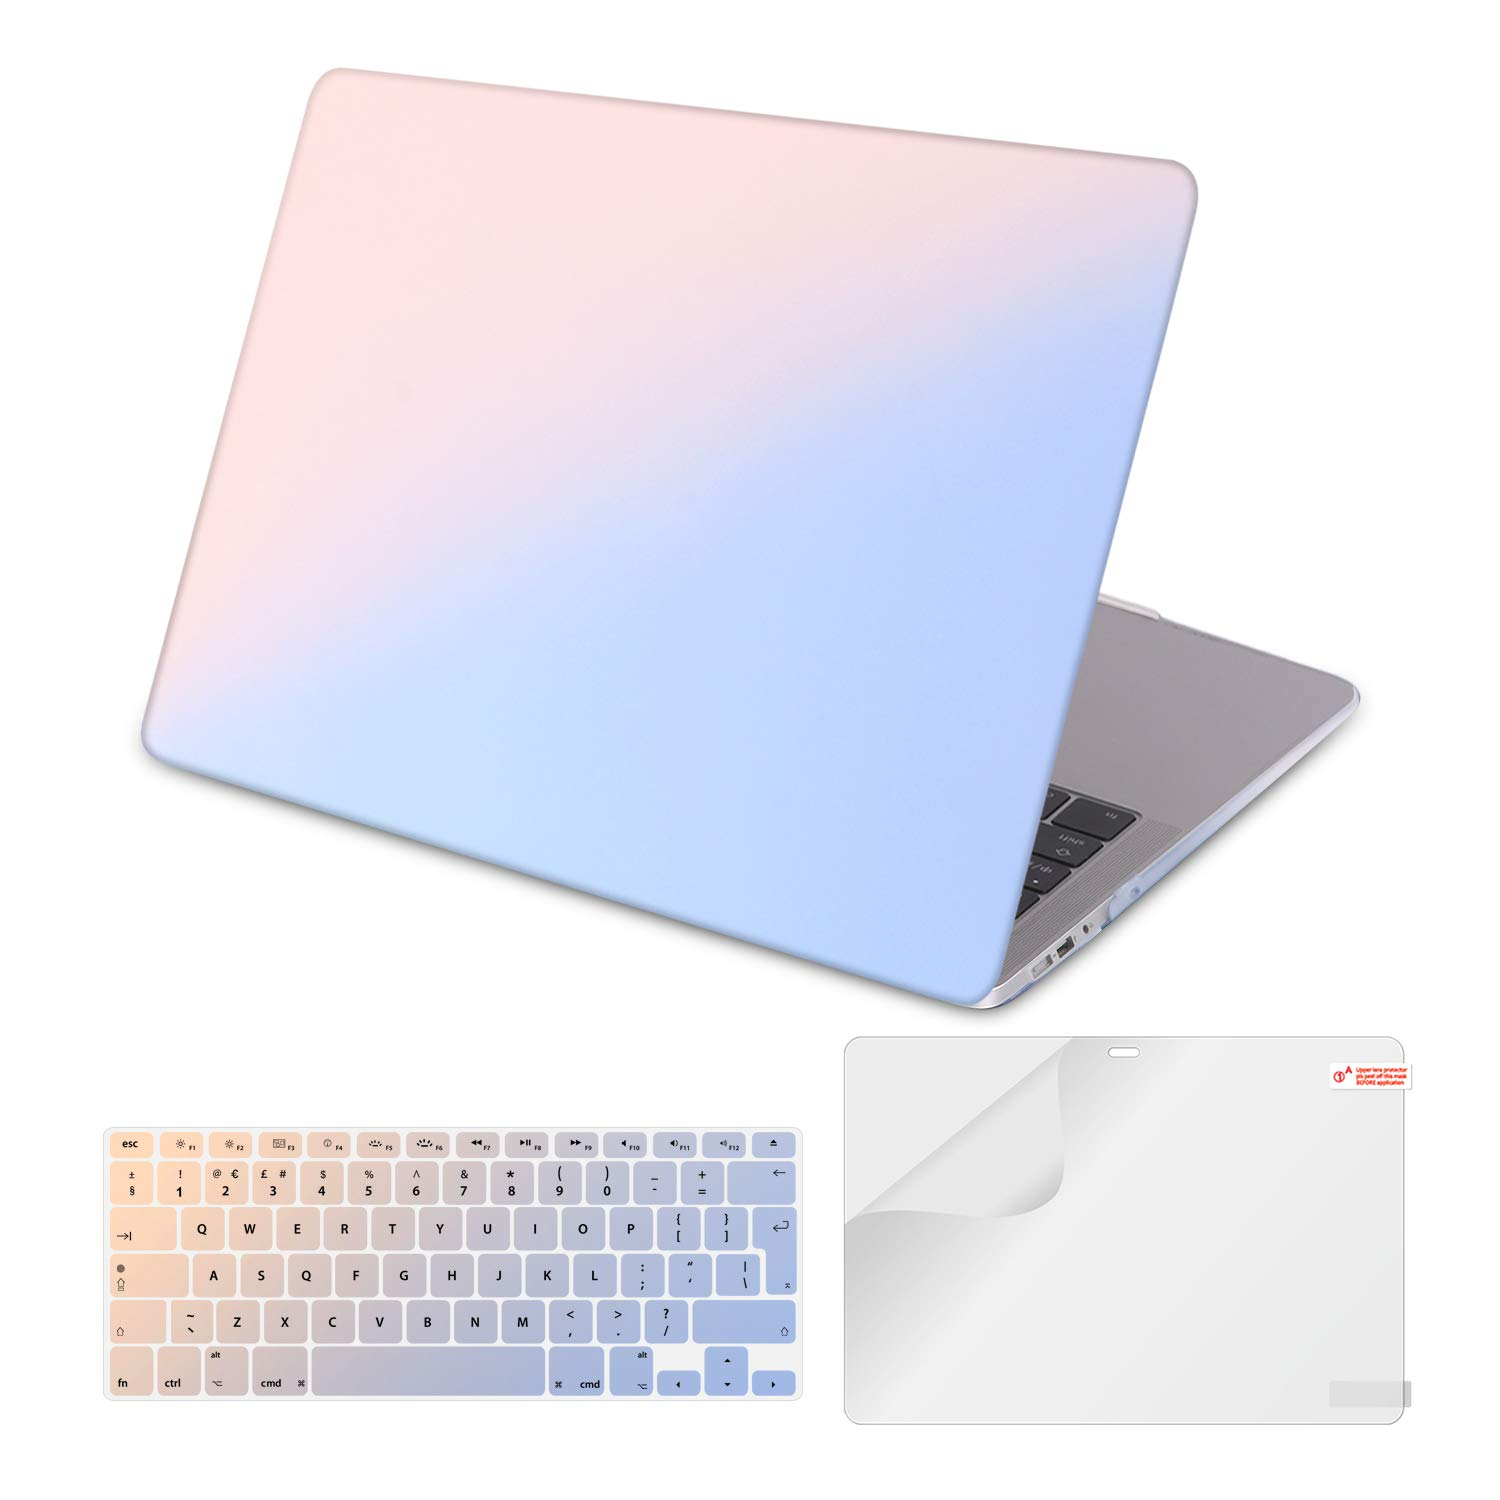 iCasso MacBook Air 13 inch Case Ultra Slim Plastic Rubber Coated Matte Hard Shell Soft-Touch Snap On Cover for MacBook Air 13 inch Model: A1369 // A1466 Purple Medallion